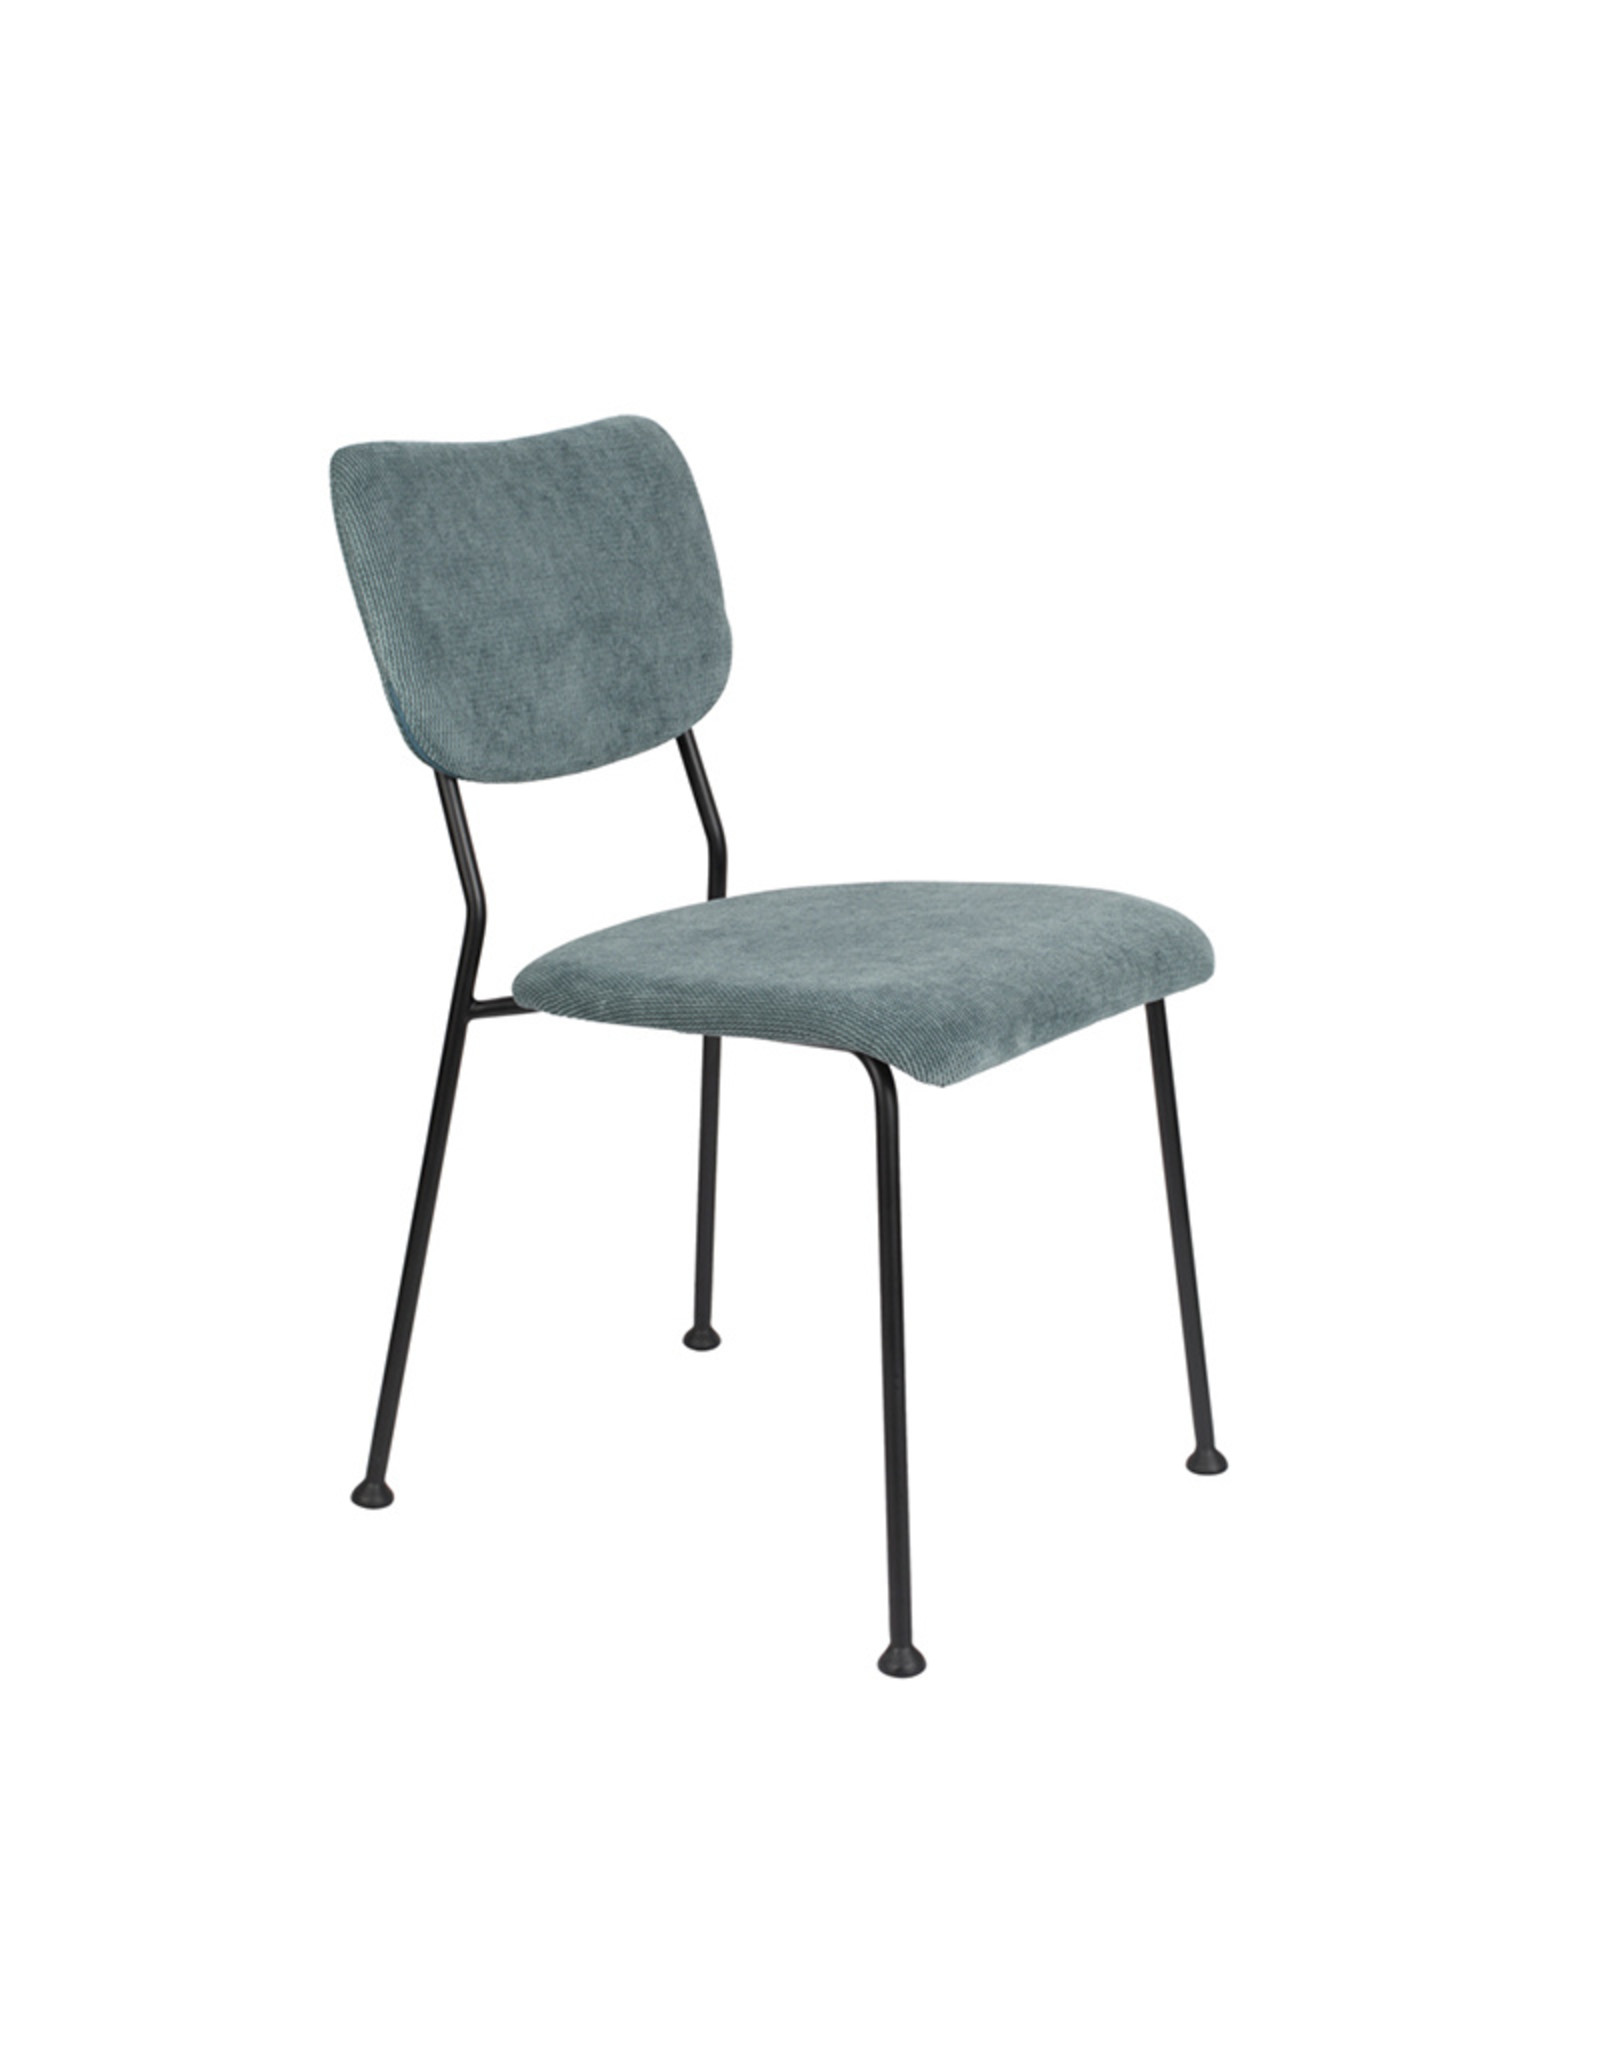 ZUIVER BV Benson Chair (set of 2)